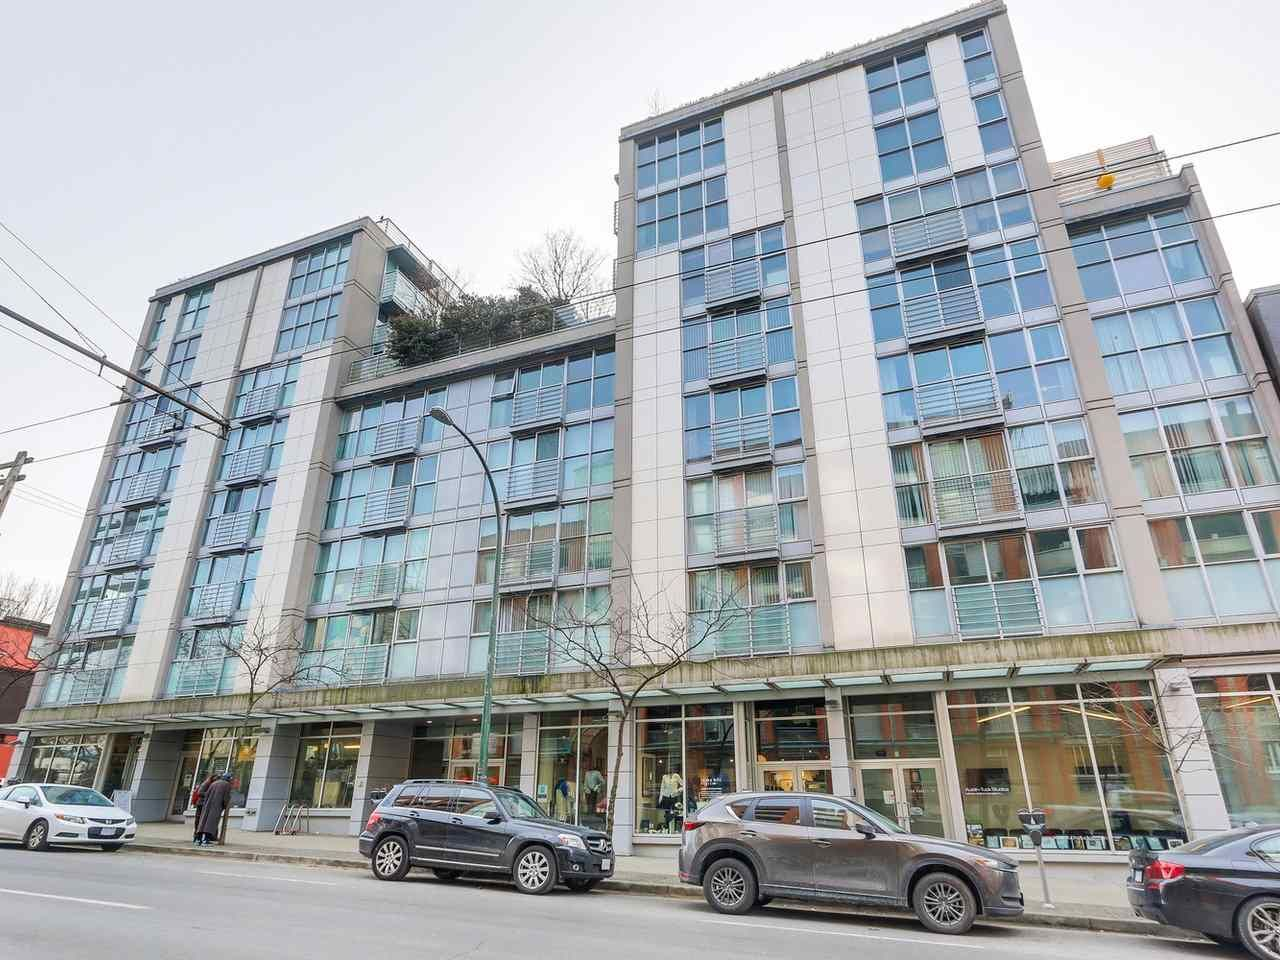 Main Photo: 217 168 POWELL Street in Vancouver: Downtown VE Condo for sale (Vancouver East)  : MLS®# R2386644